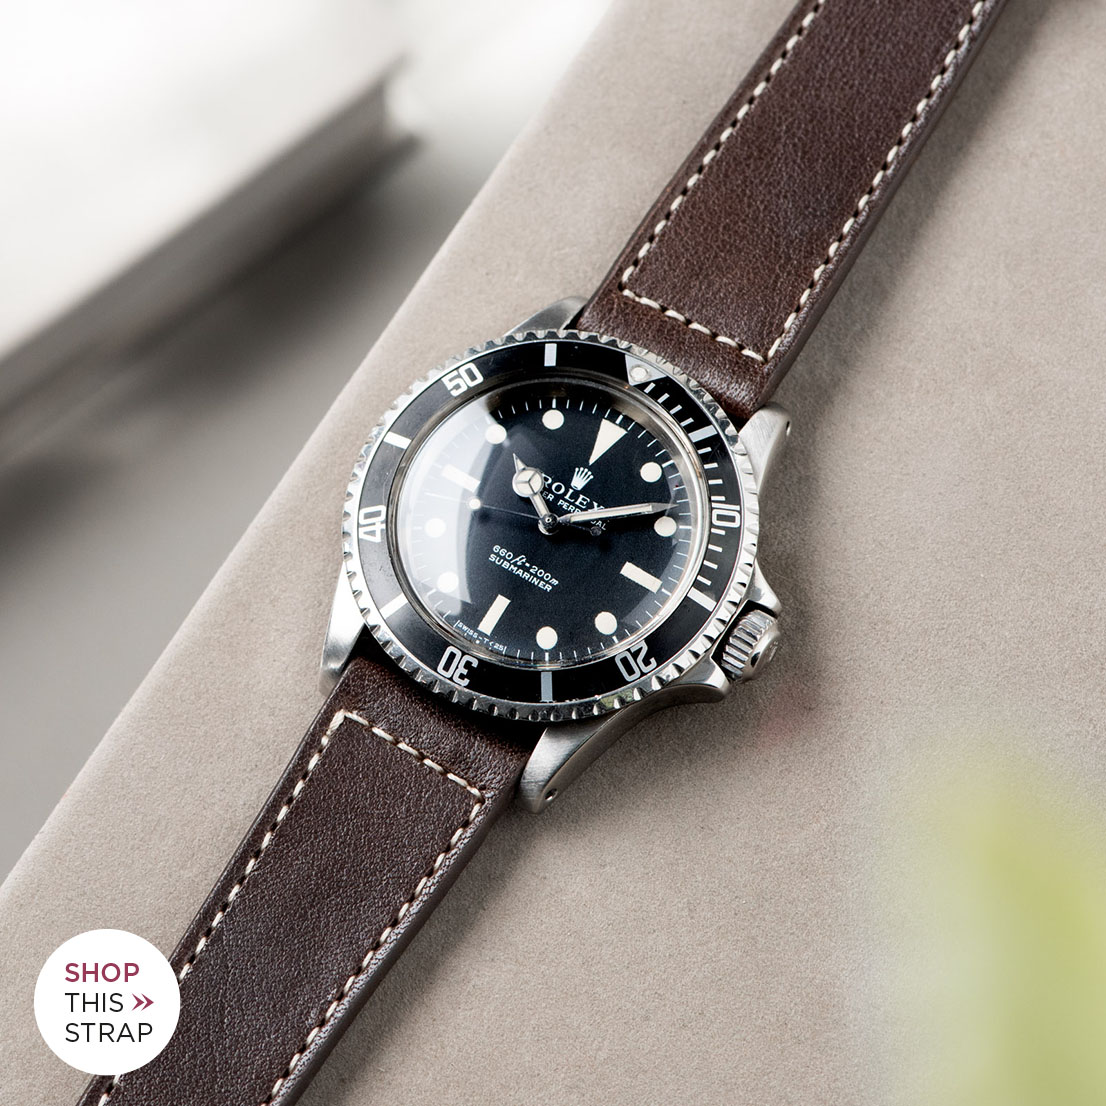 Bulang and Sons_Strap Guide_Rolex 5513 Submariner_SEAL DARK BROWN BOXED STITCH LEATHER WATCH STRAP